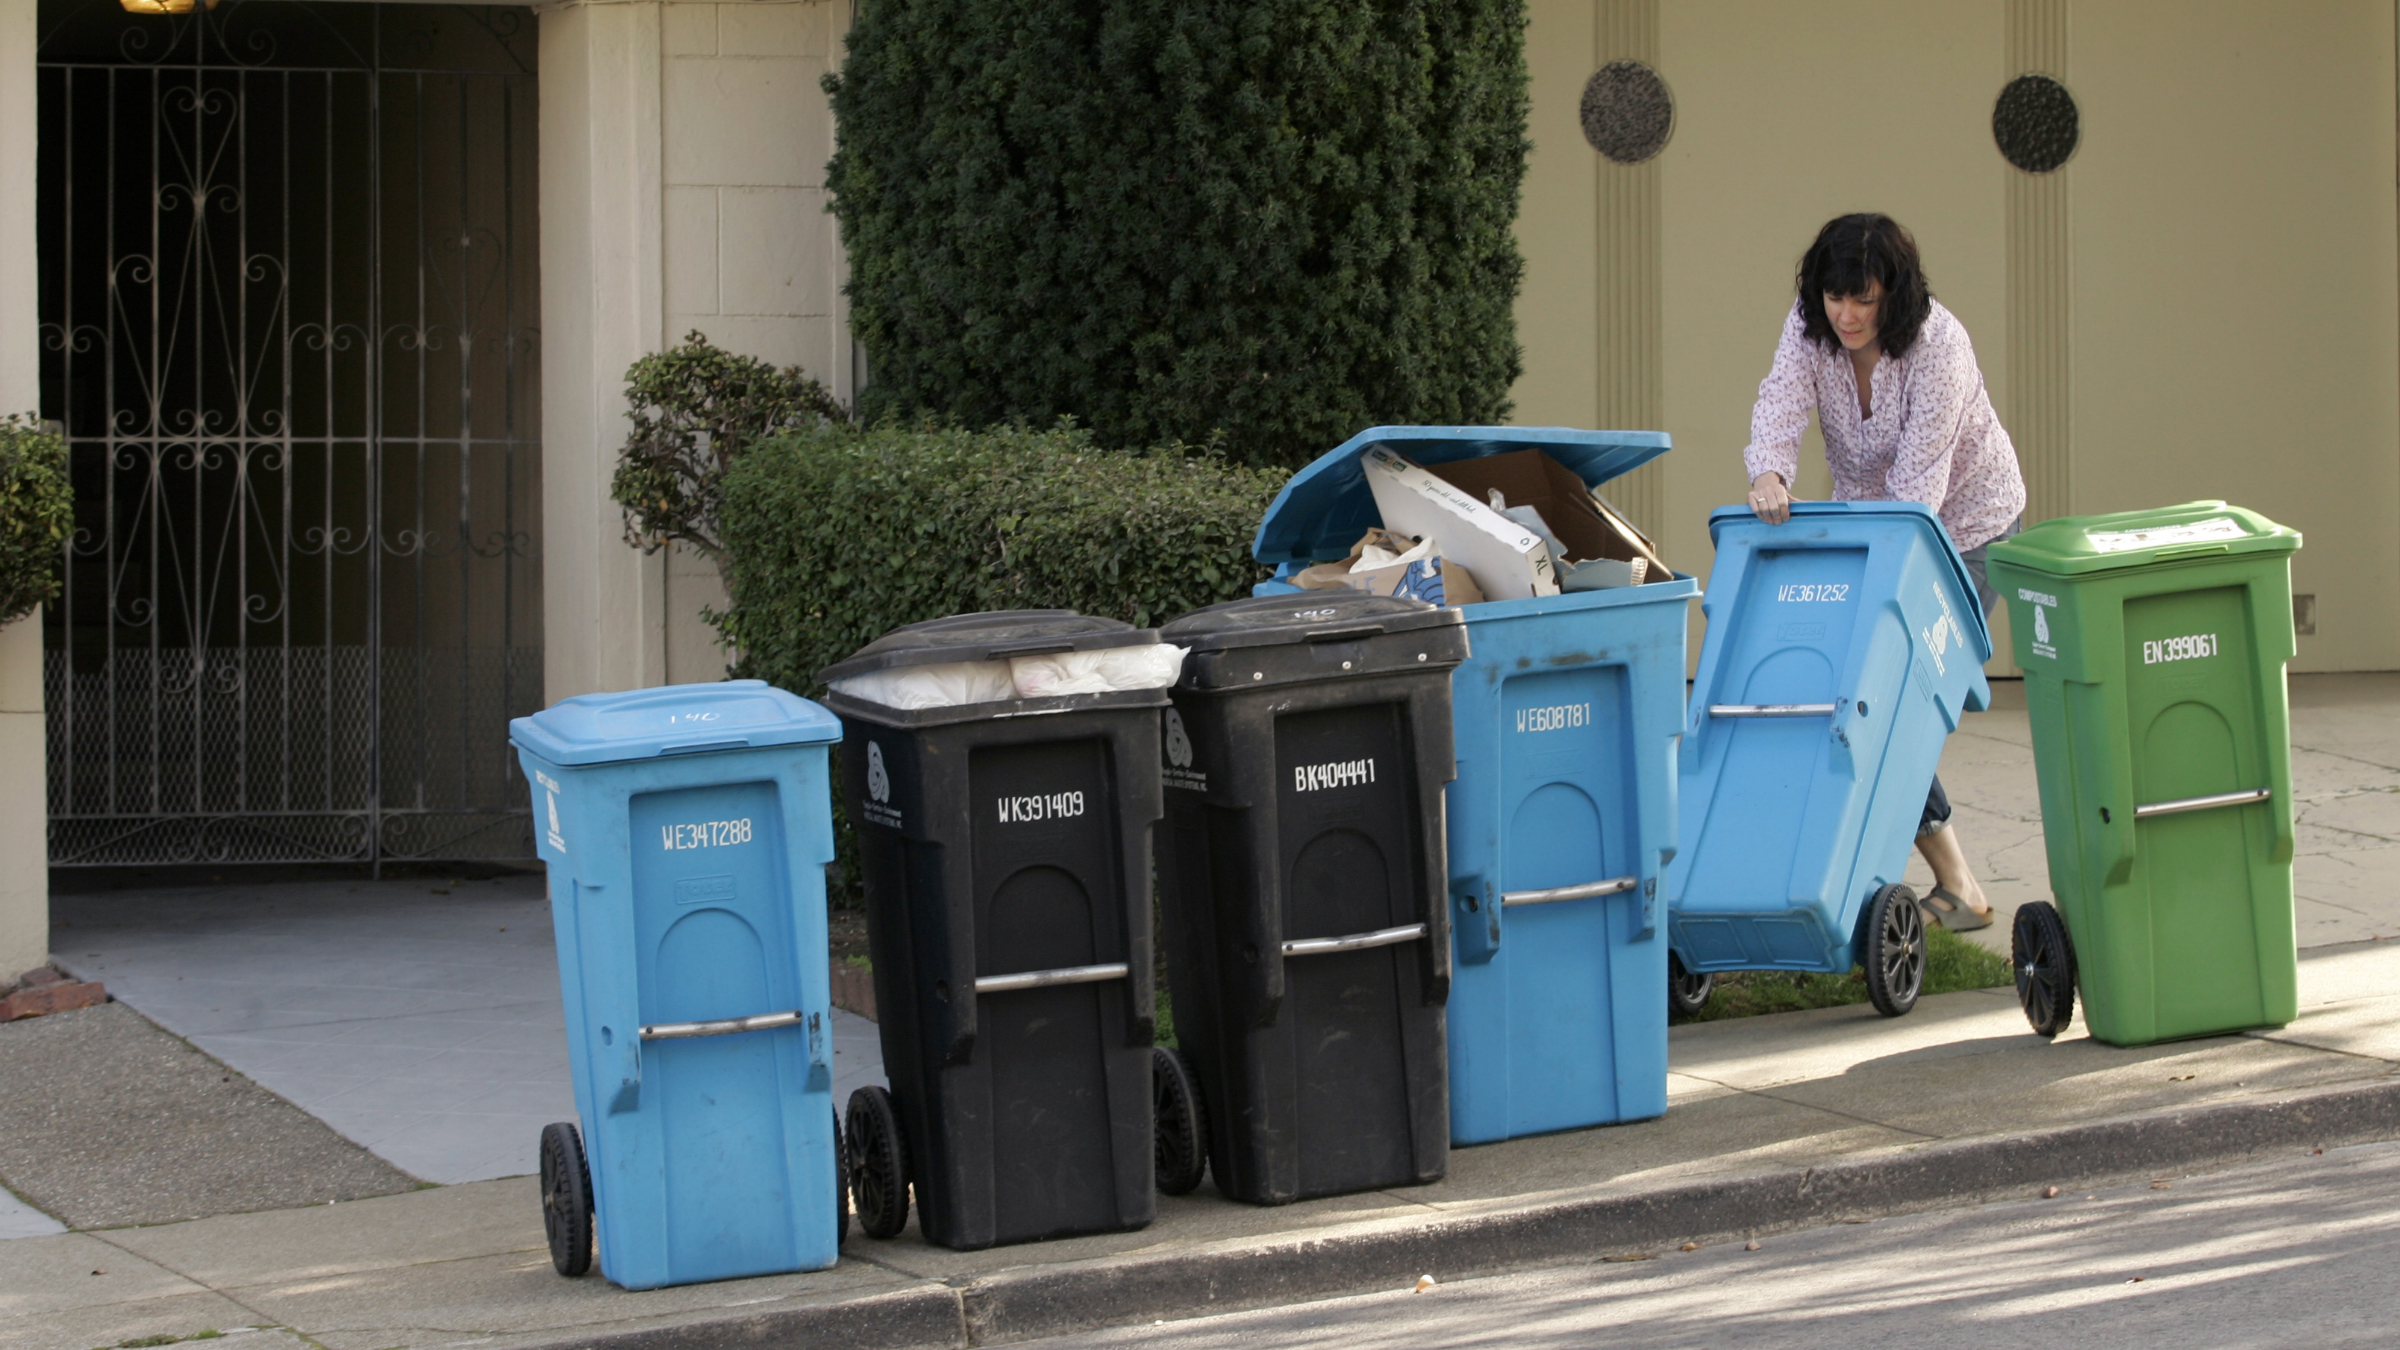 A resident wheels a recycling container to the curb for pickup in San Francisco, California November 4, 2009. Most of the city's recycled refuse is taken to Recology at Pier 96, where glass, plastic and paper is sorted and compressed into compact cubes. Picture taken November 4, 2009. REUTERS/Robert Galbraith